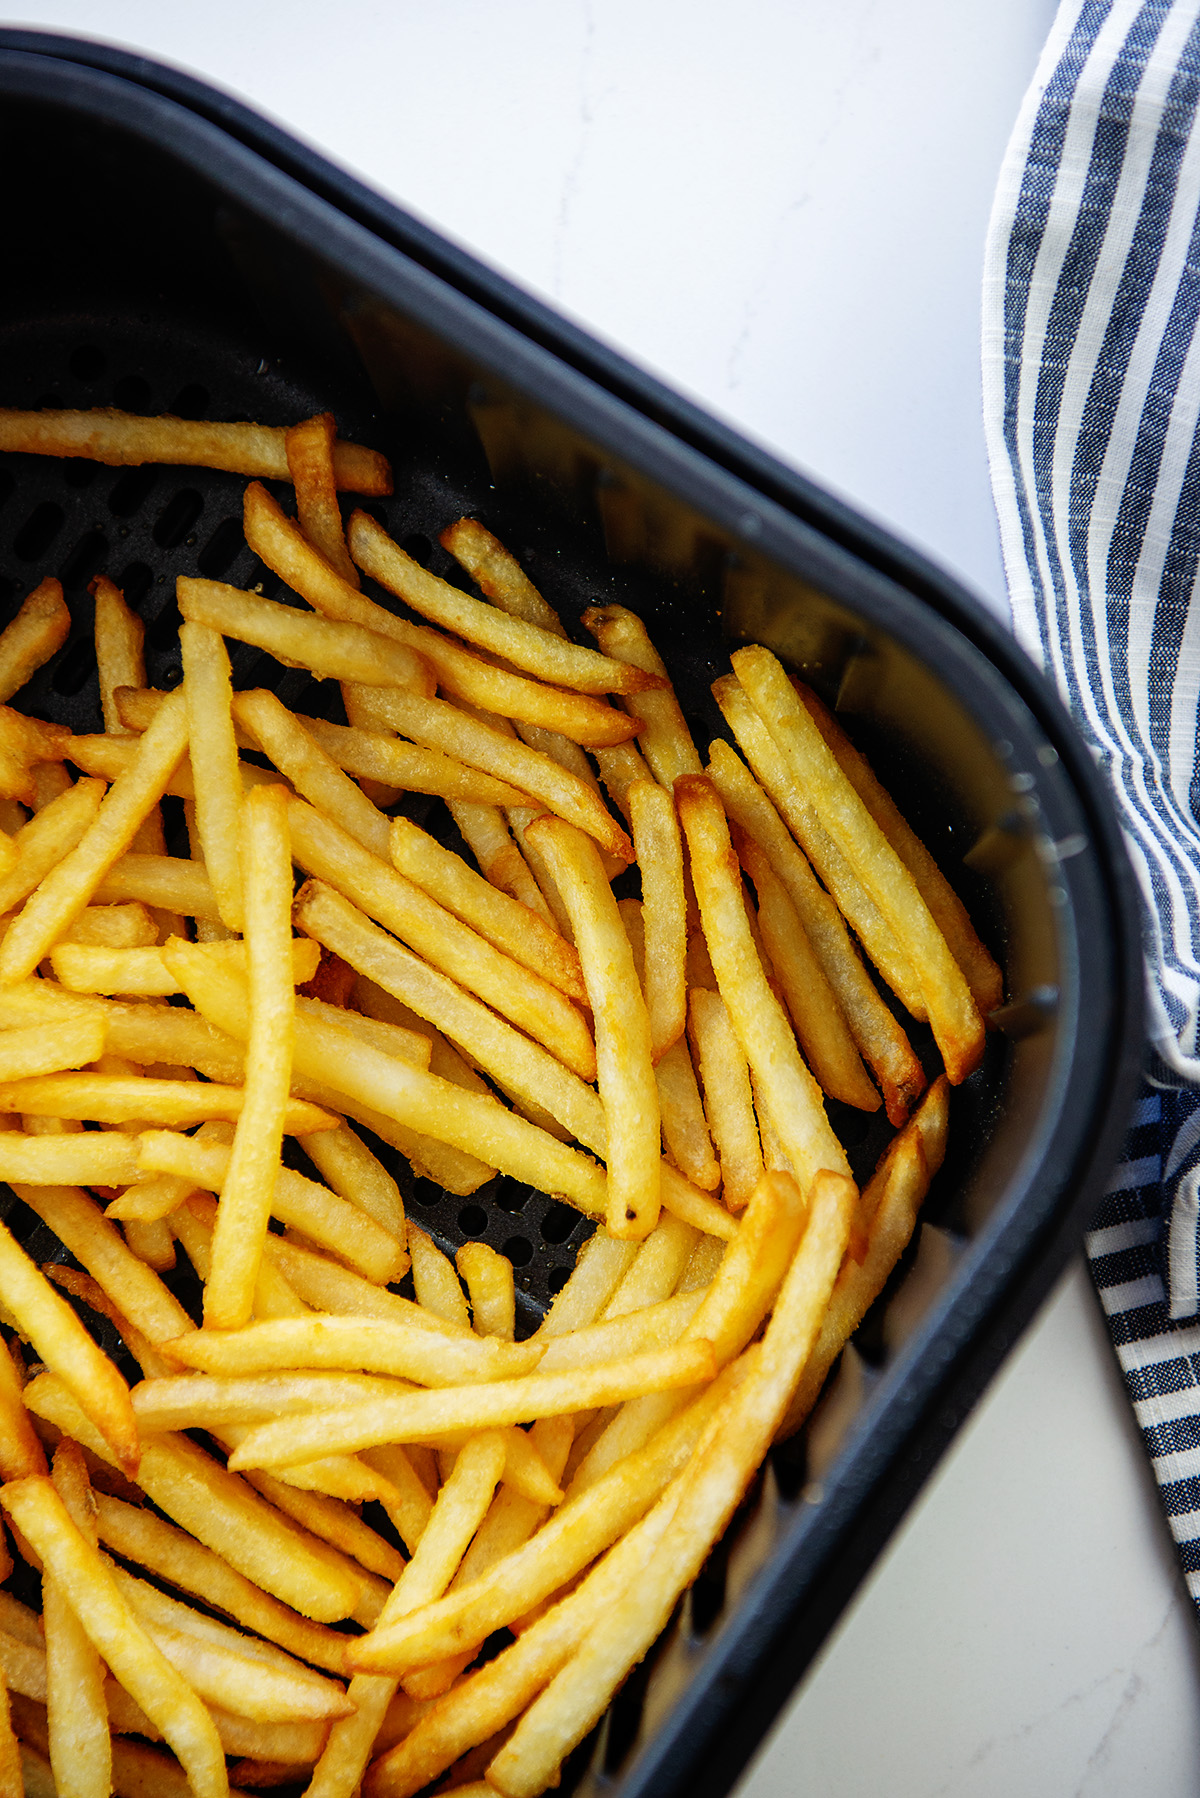 Air fryer basket full of cooked french fries